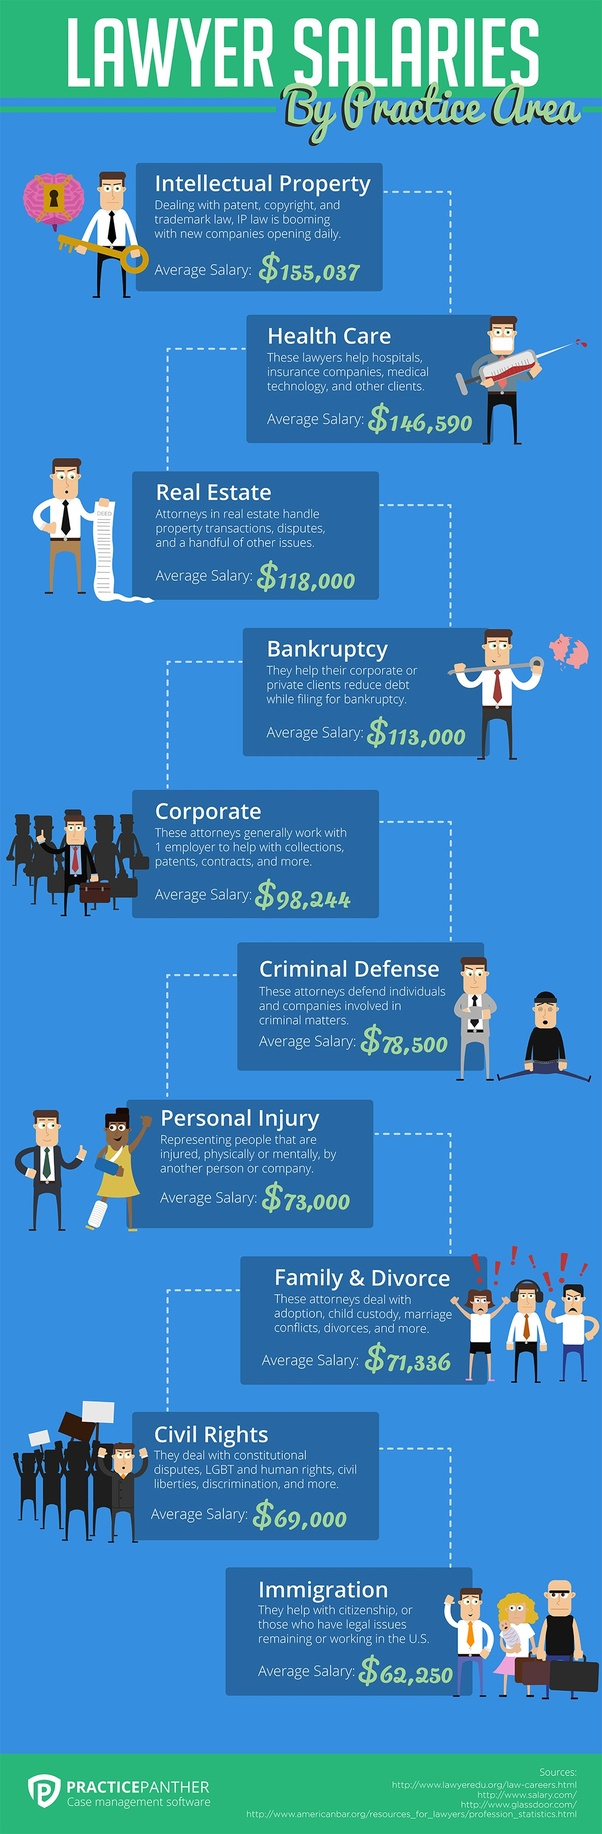 What types of lawyers tend to make the most money? - Quora